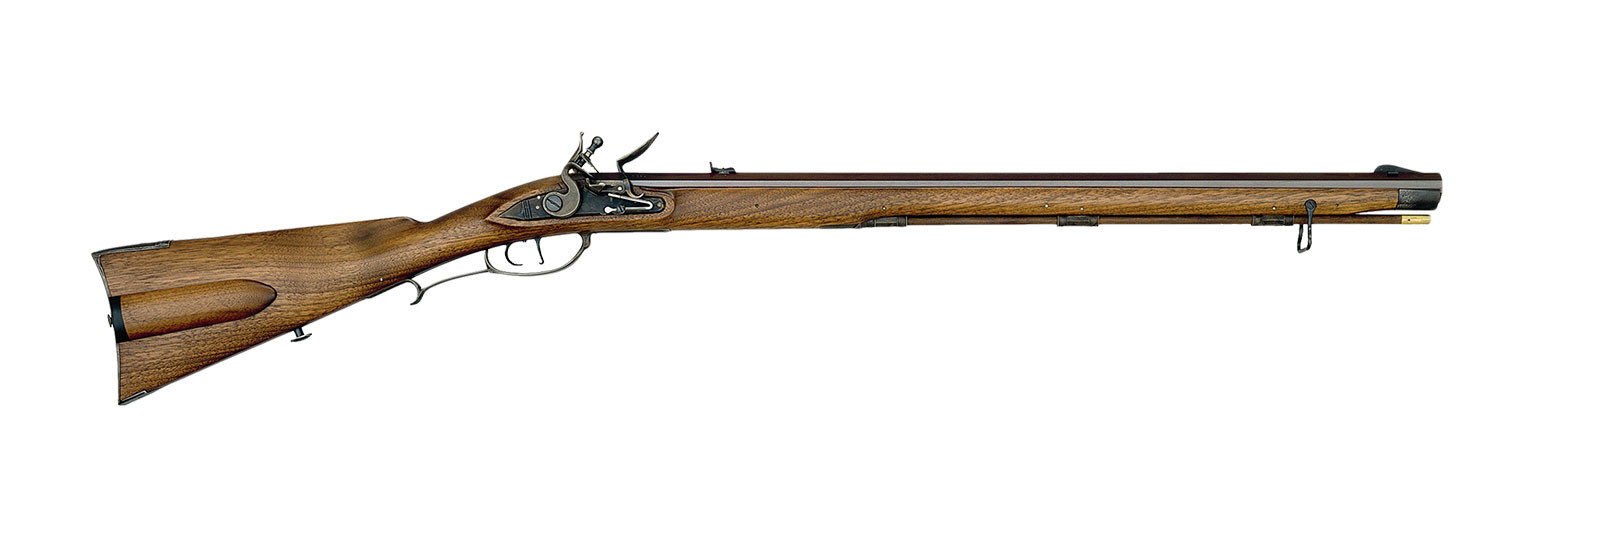 Jaeger flint rifle .54